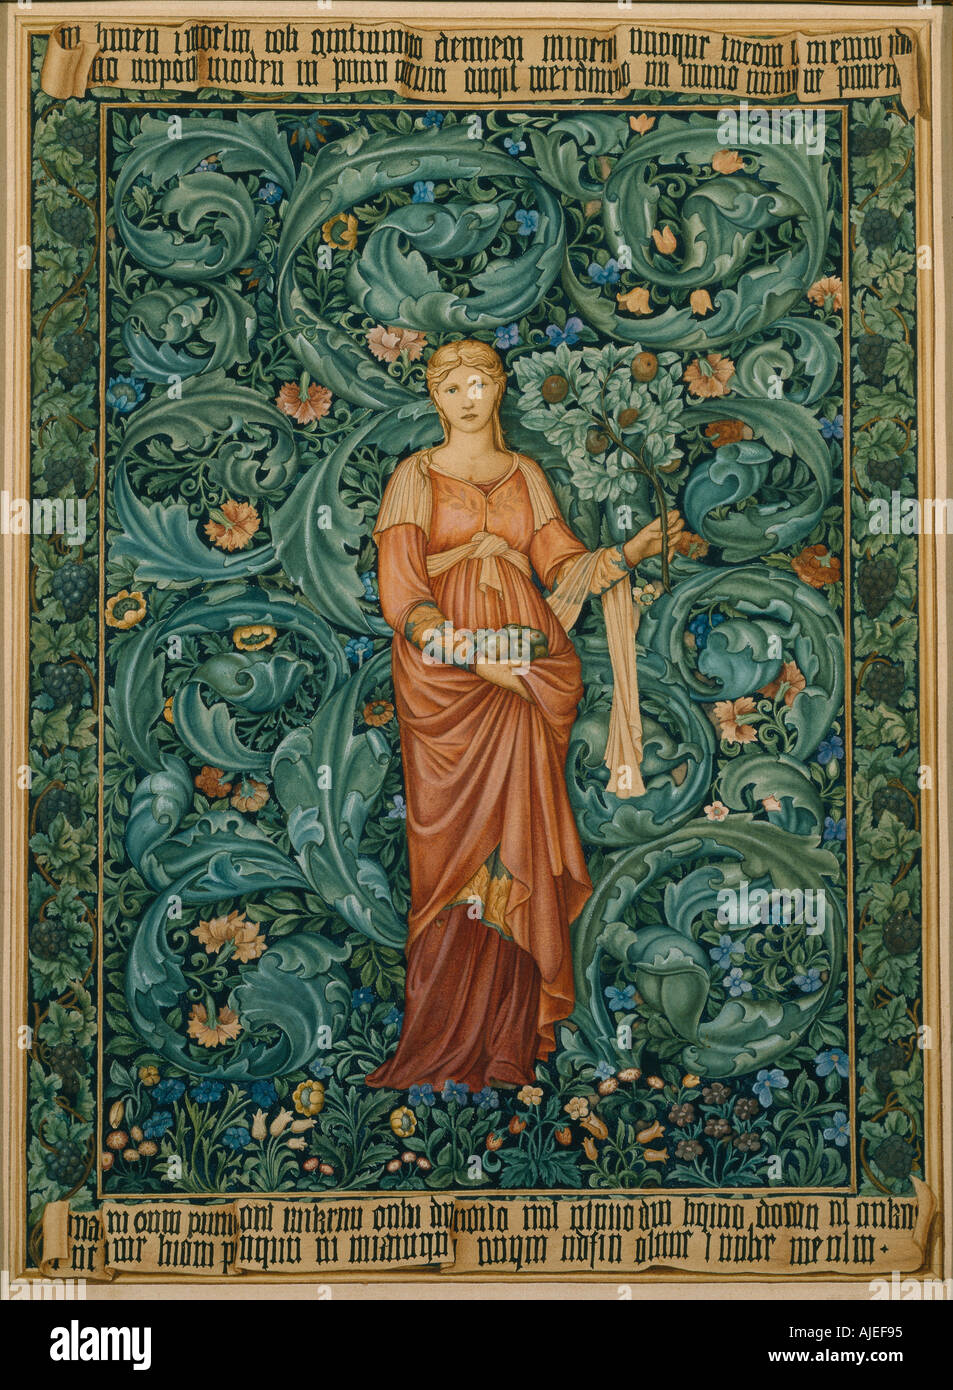 POMONA TAPESTRY at Wightwick Manor West Midlands - Stock Image